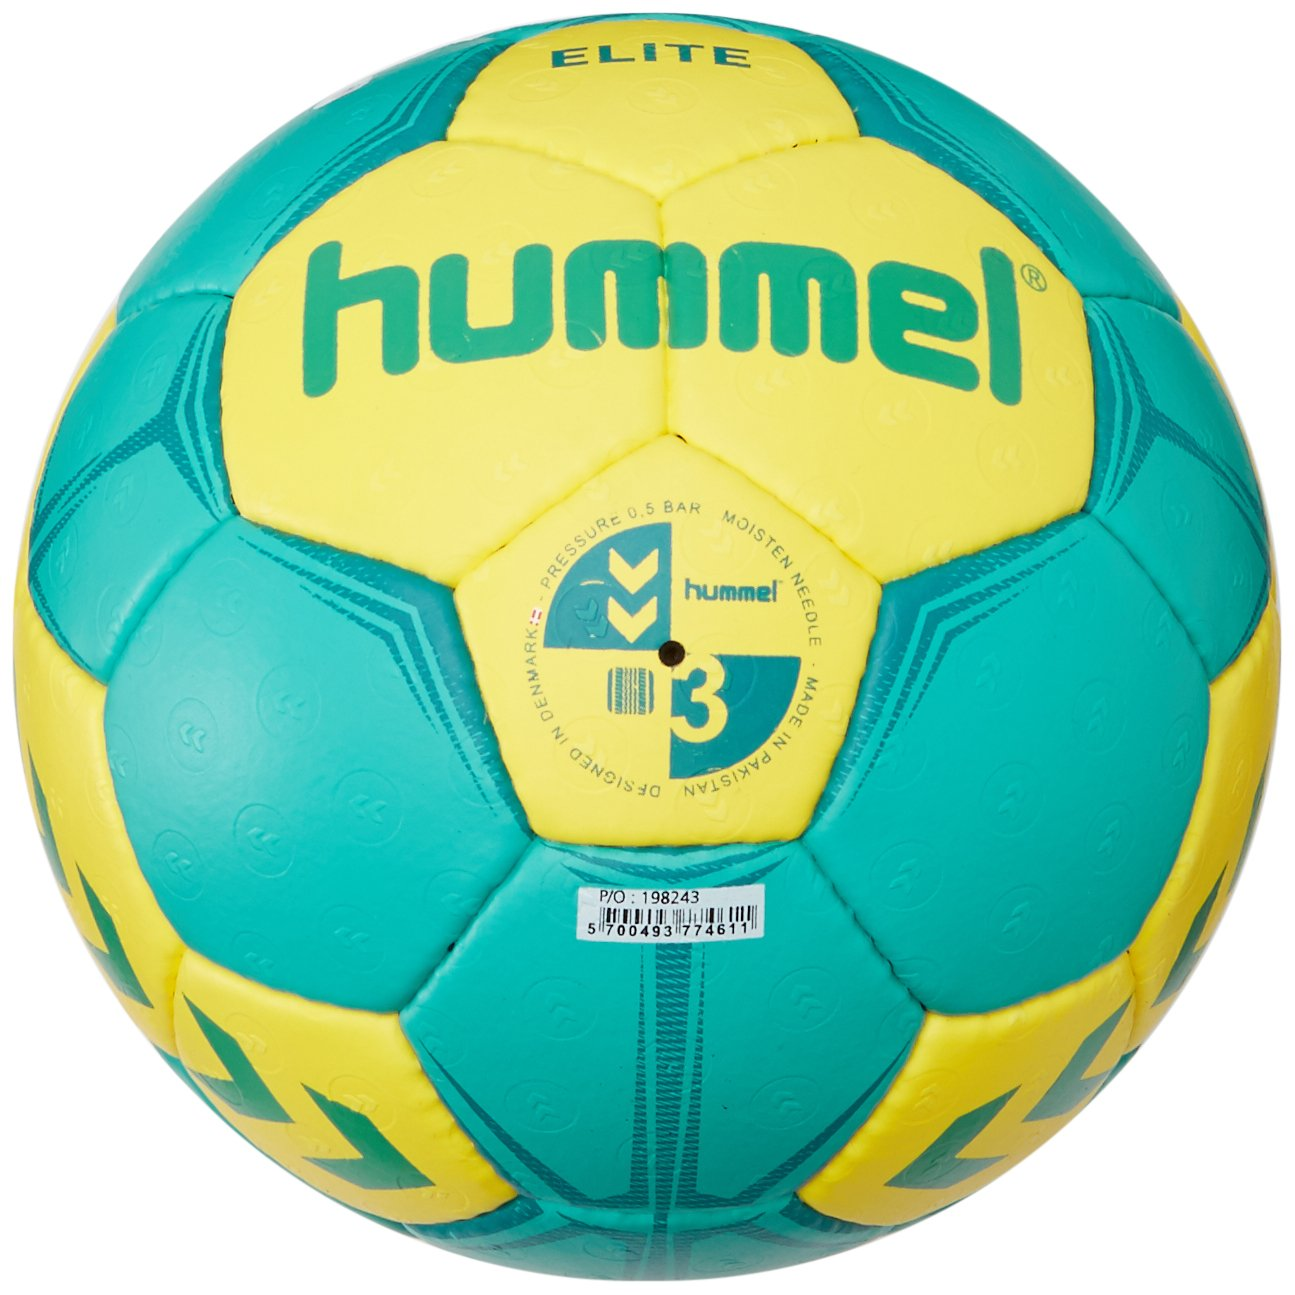 List of Synonyms and Antonyms of the Word: hummel handball